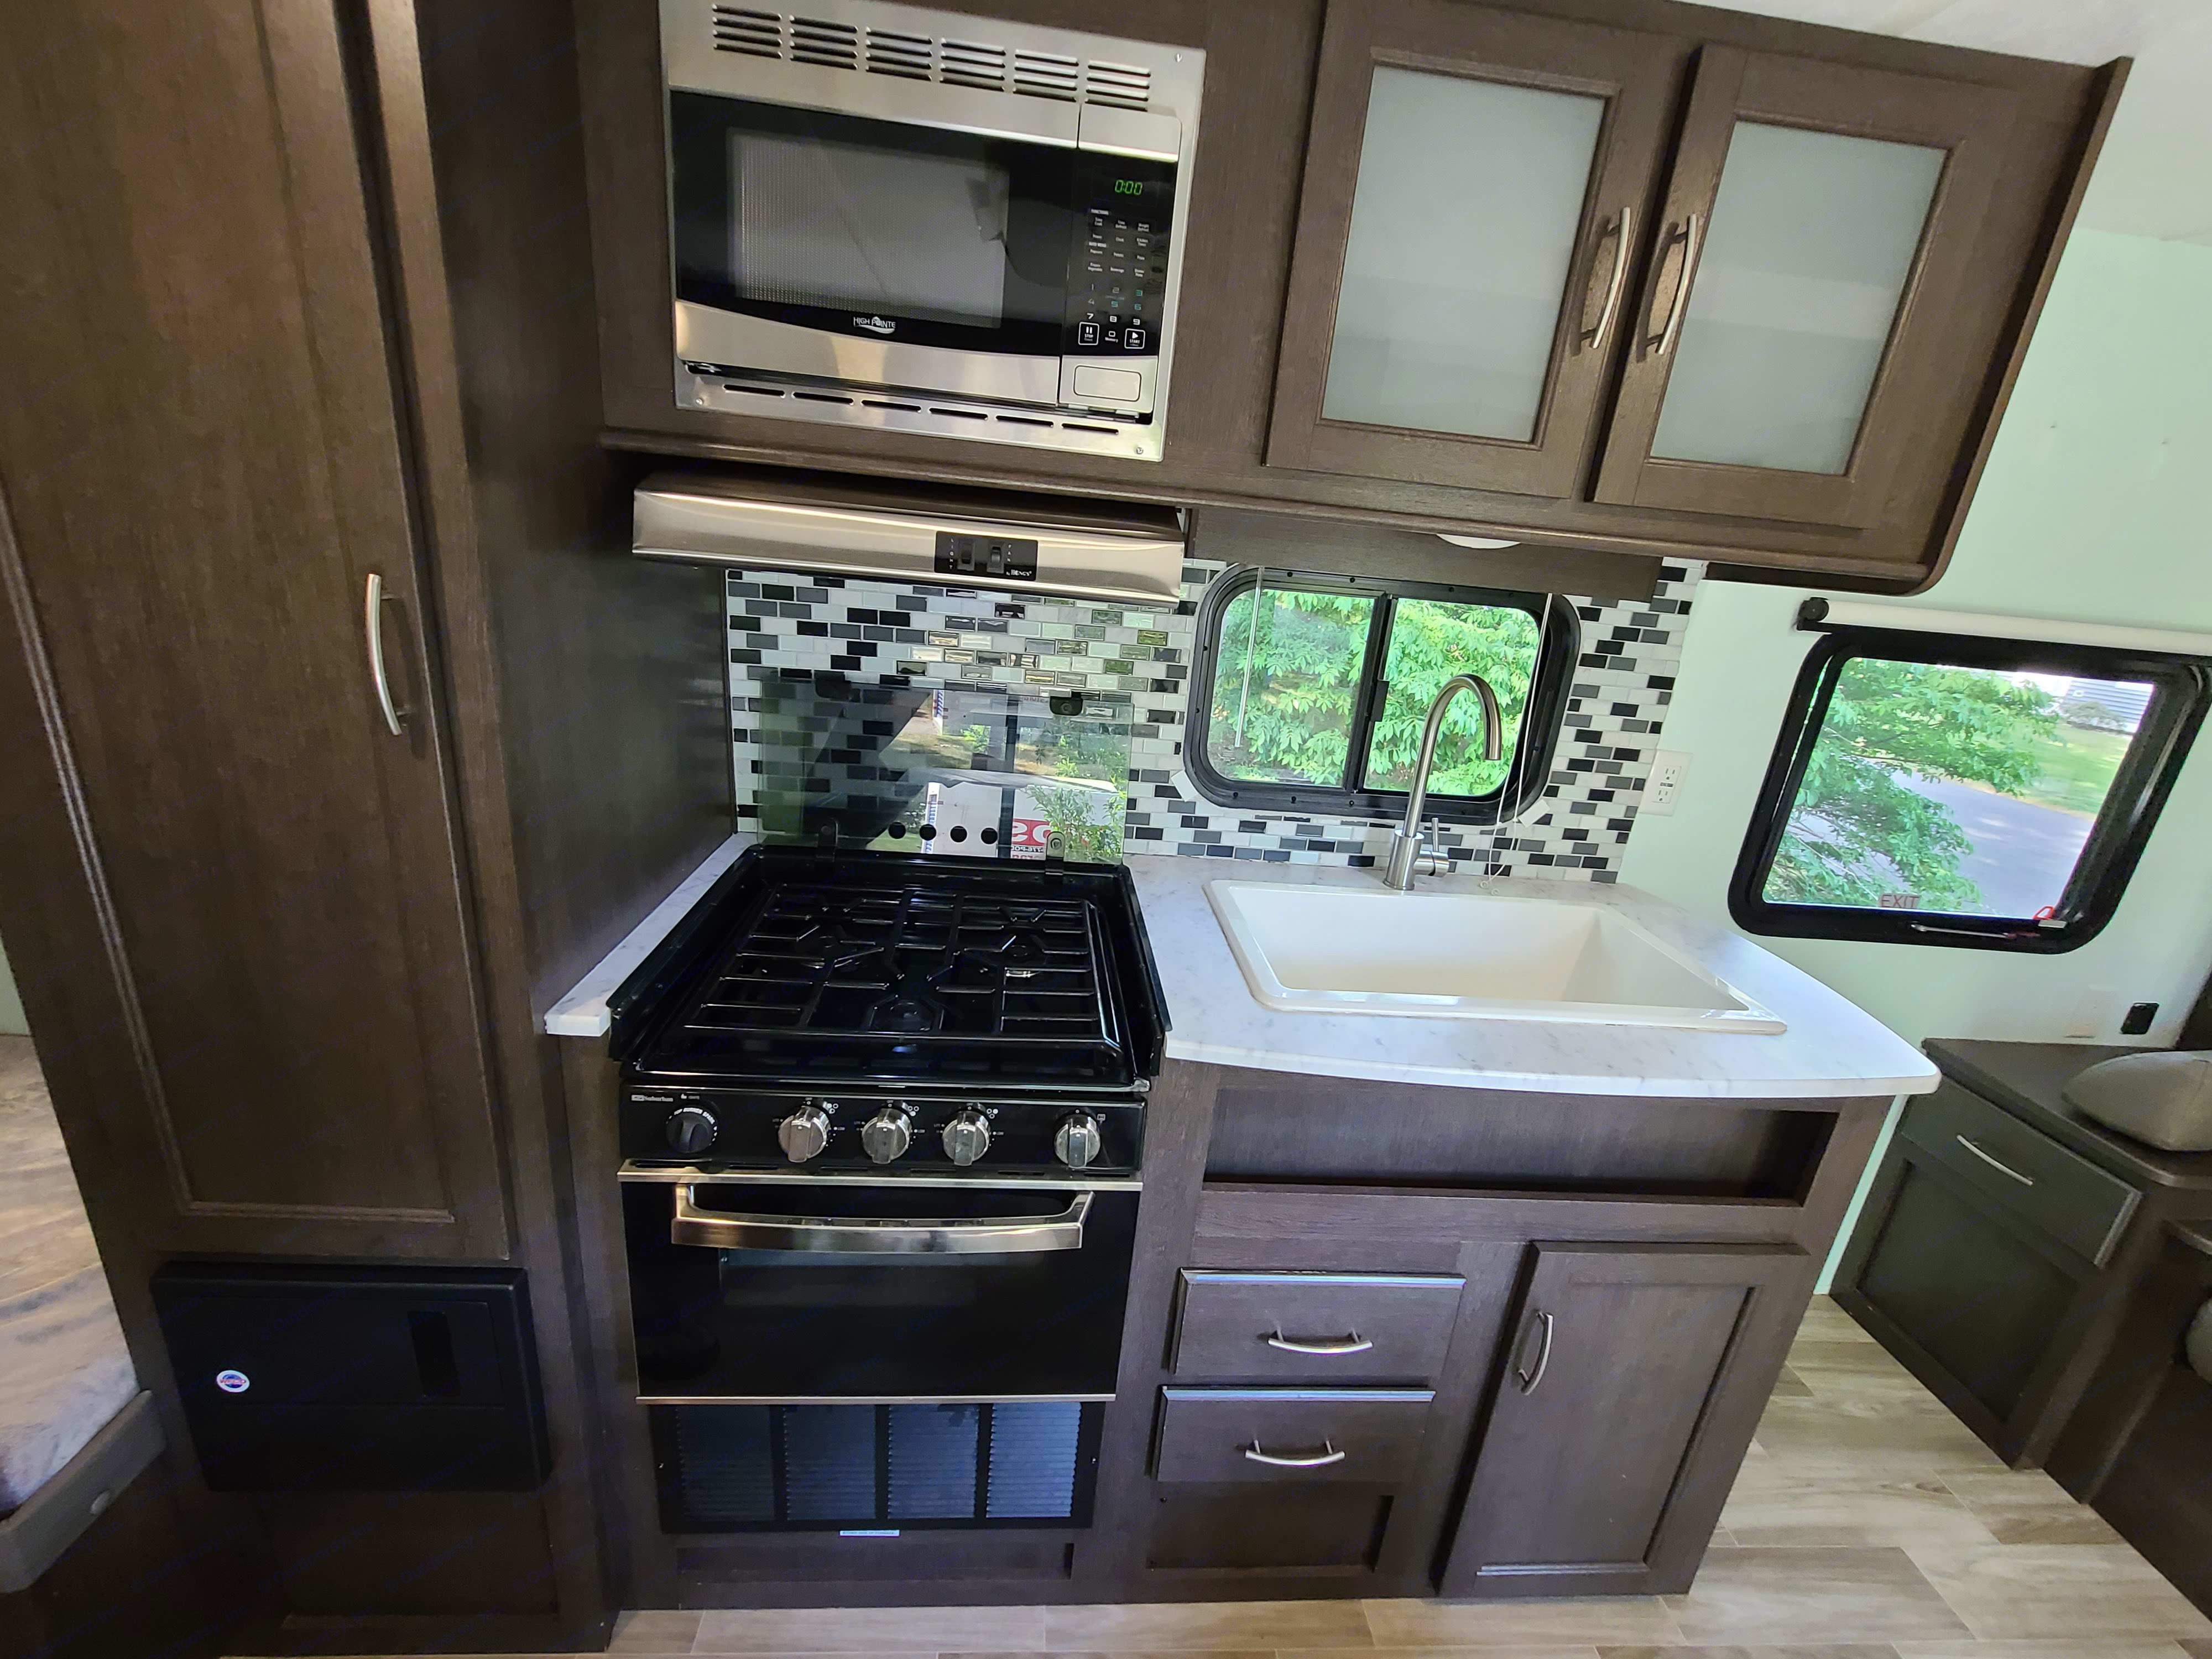 3 burner gas stove, gas oven, microwave, and farm style sink. Plates, pots and pans, and silverware available.. Forest River Cruise Lite 2019